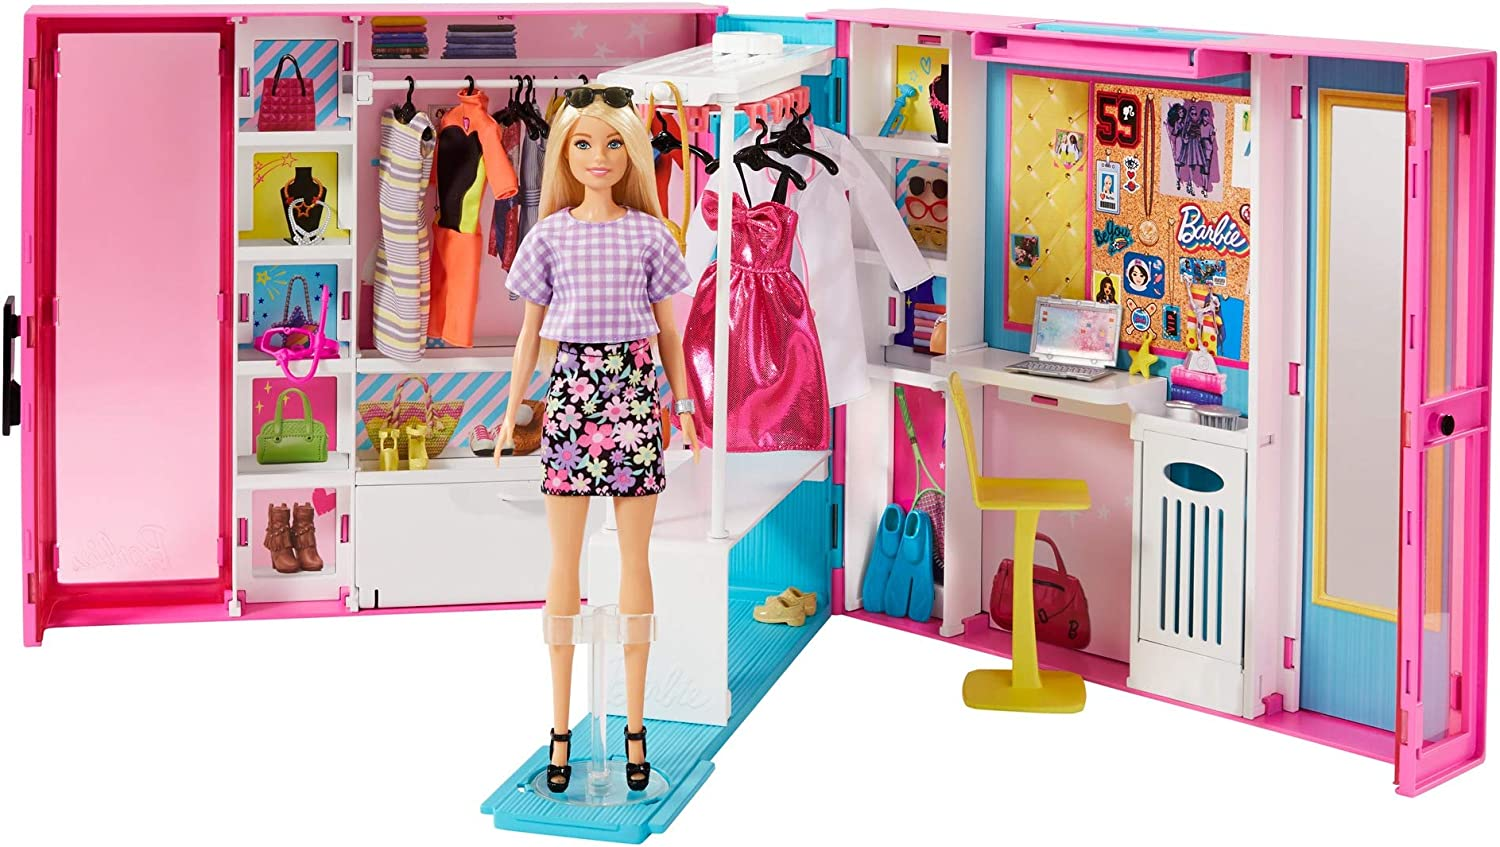 Amazon Com Barbie Dream Closet With Blonde Barbie Doll 25 Pieces Toy Closet Expands To 2 Ft Wide Features 10 Storage Areas Full Length Mirror Customizable Desk Space And Rotating Clothes Rack